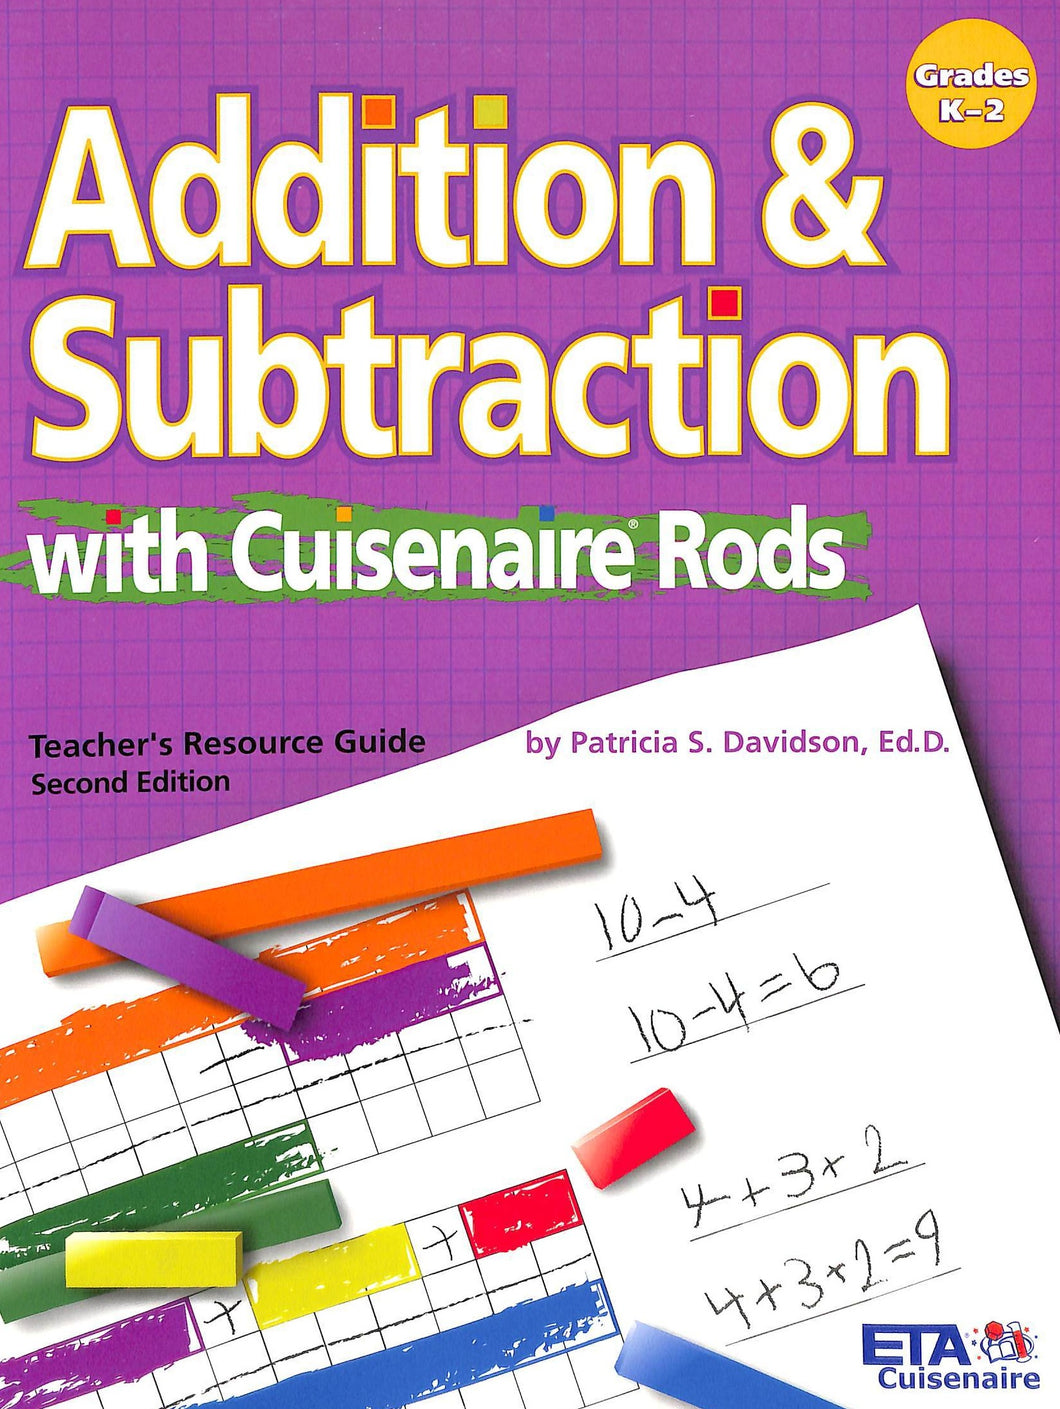 Cuisenaire Addition & Subtraction Teacher Resource Manual